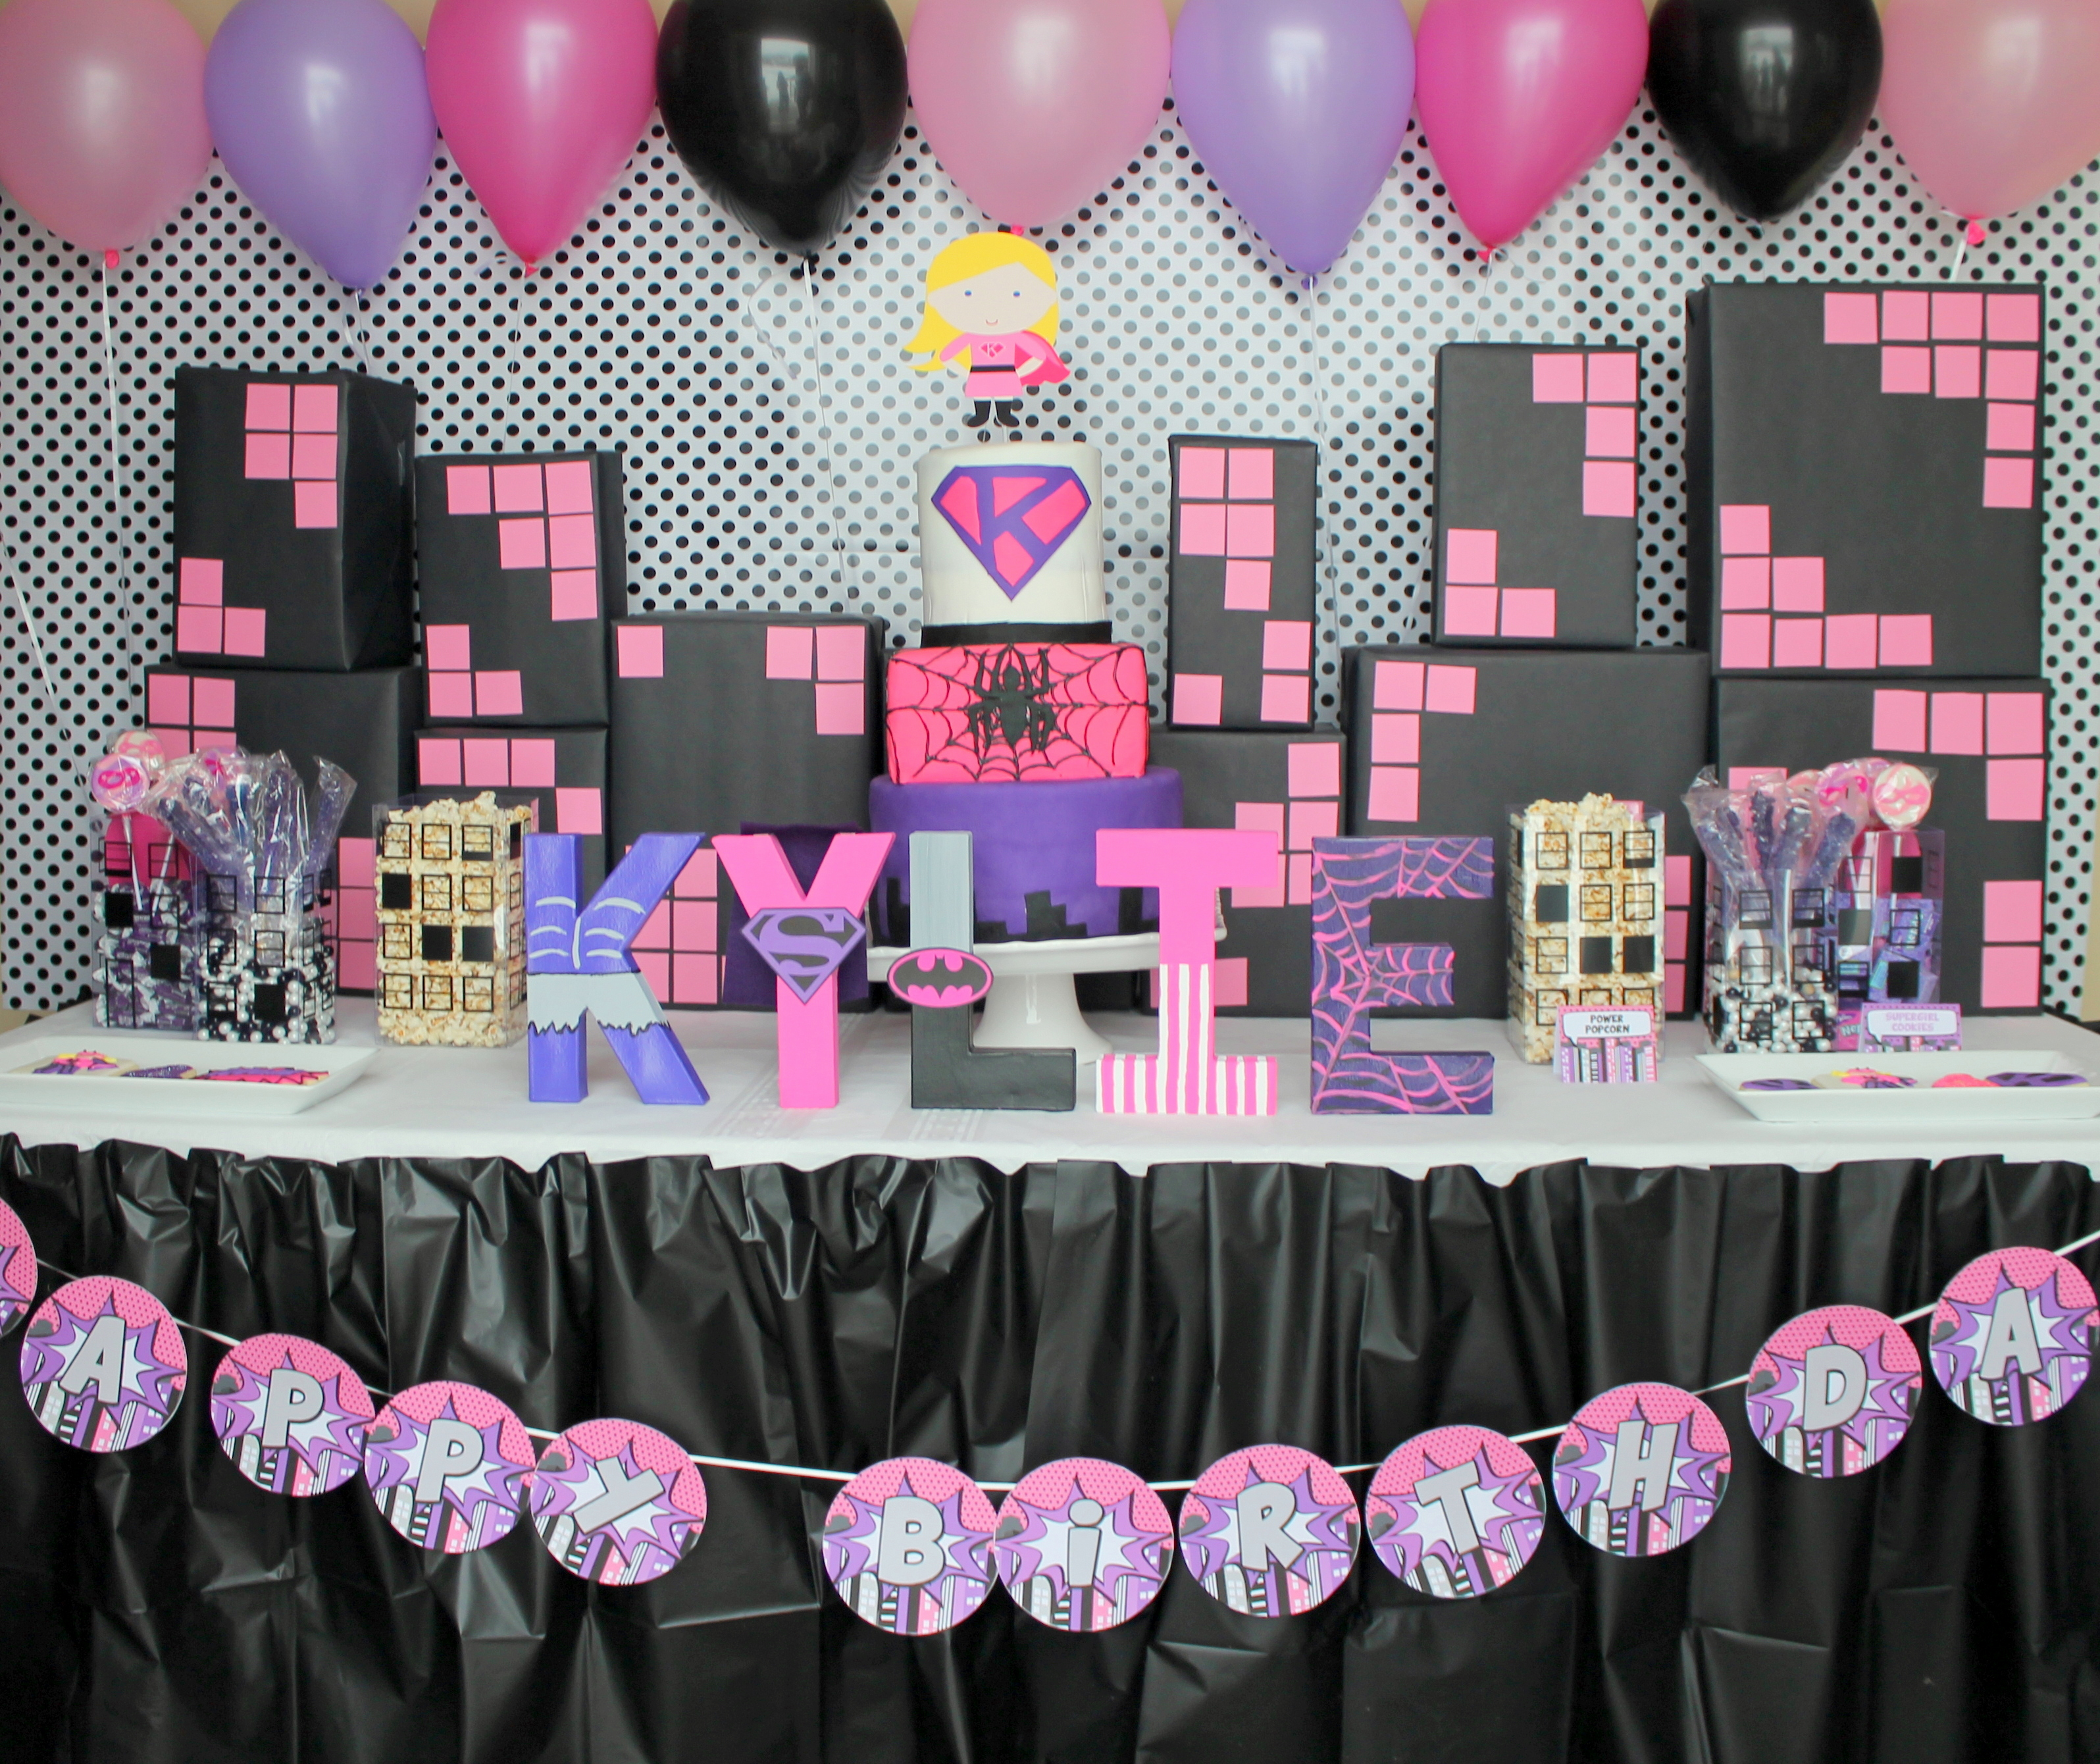 Girly Ideas For Bedrooms: A Girly Superhero Birthday Party